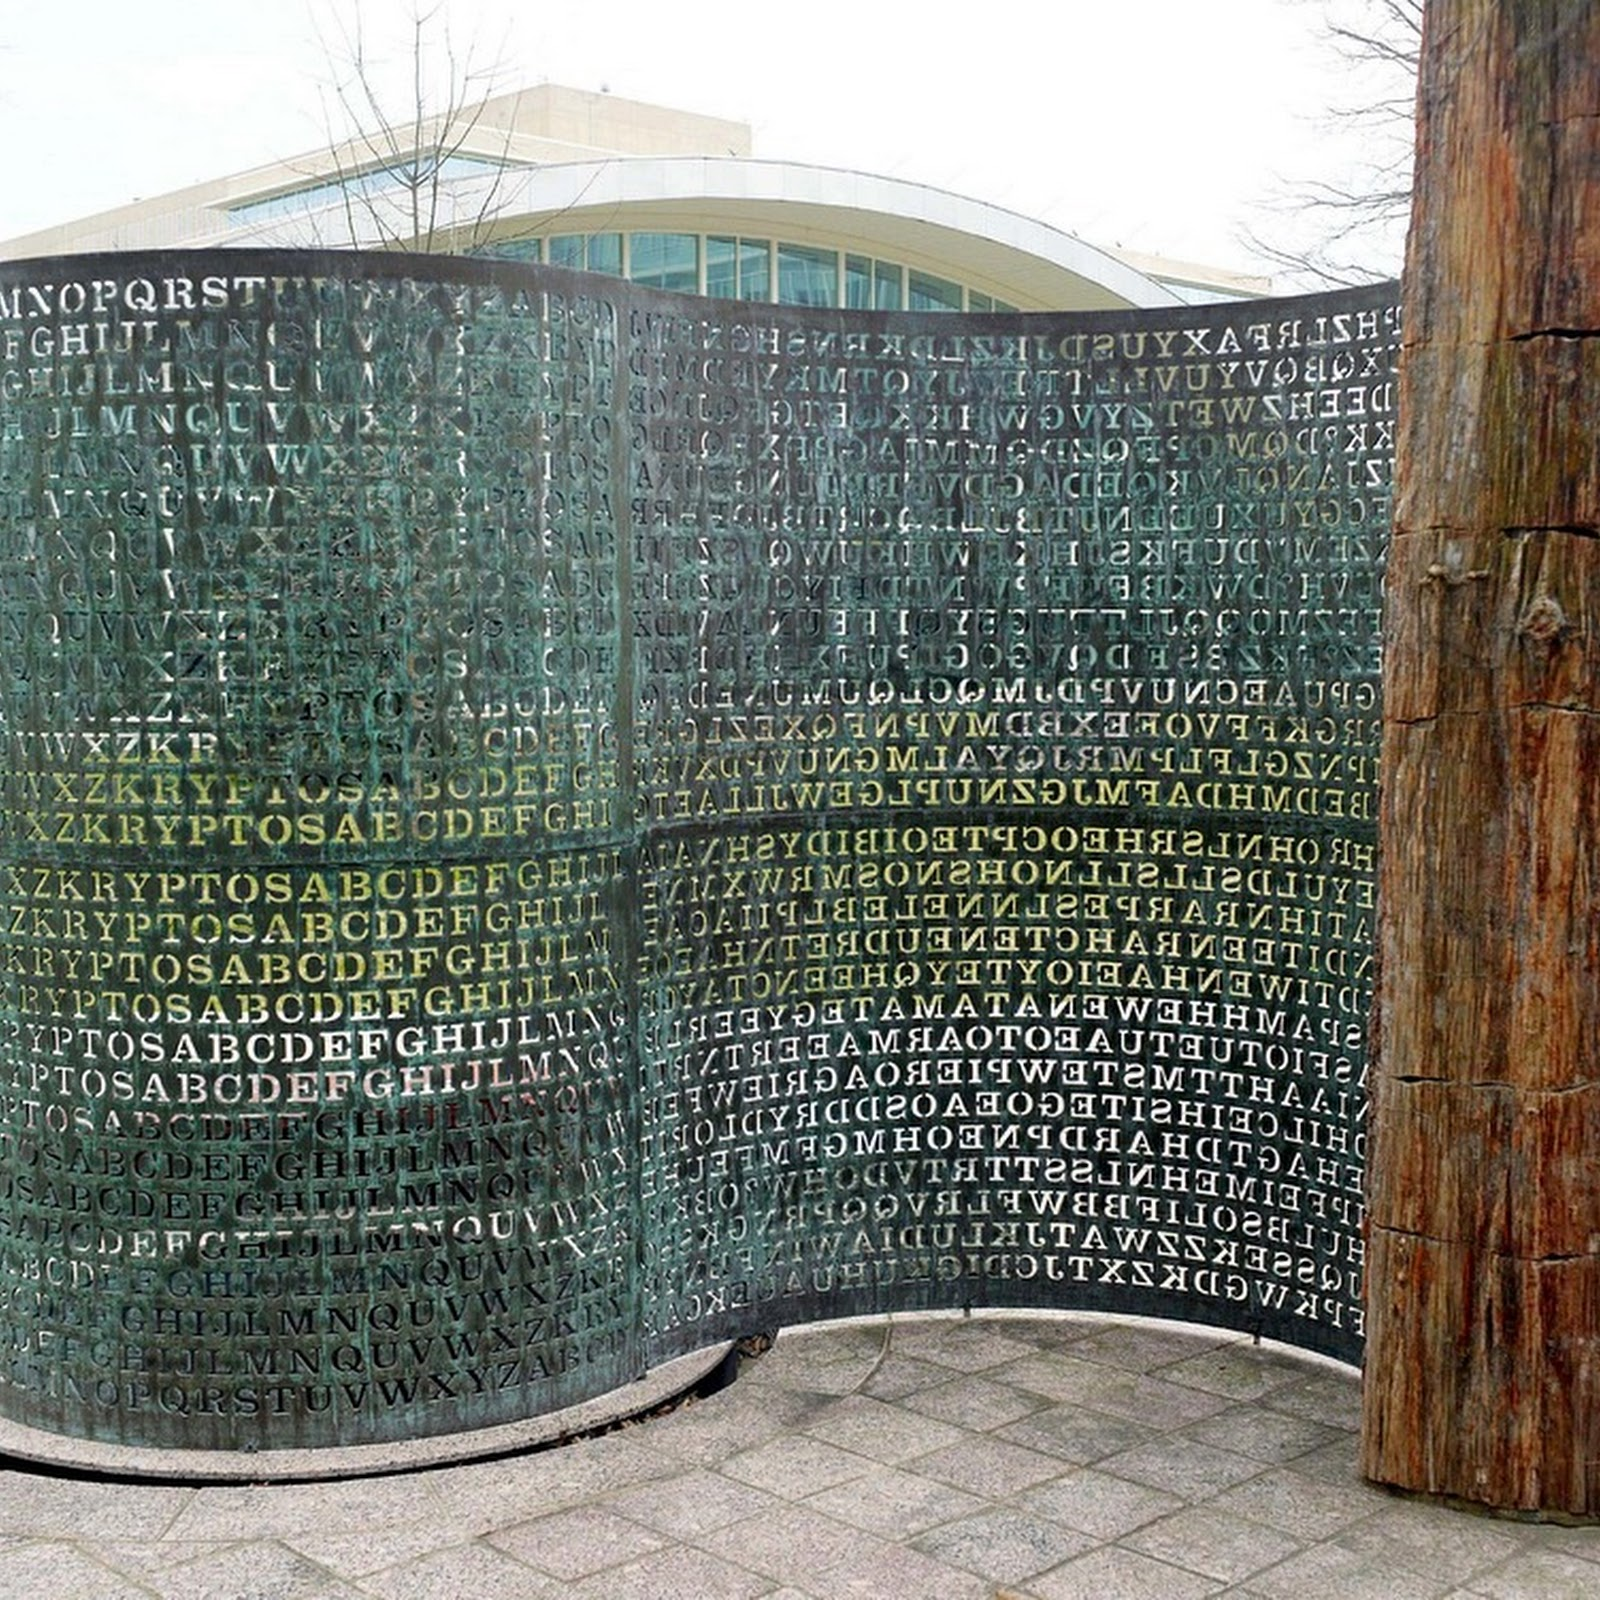 Kryptos: The Mystery Sculpture At CIA's Headquarters